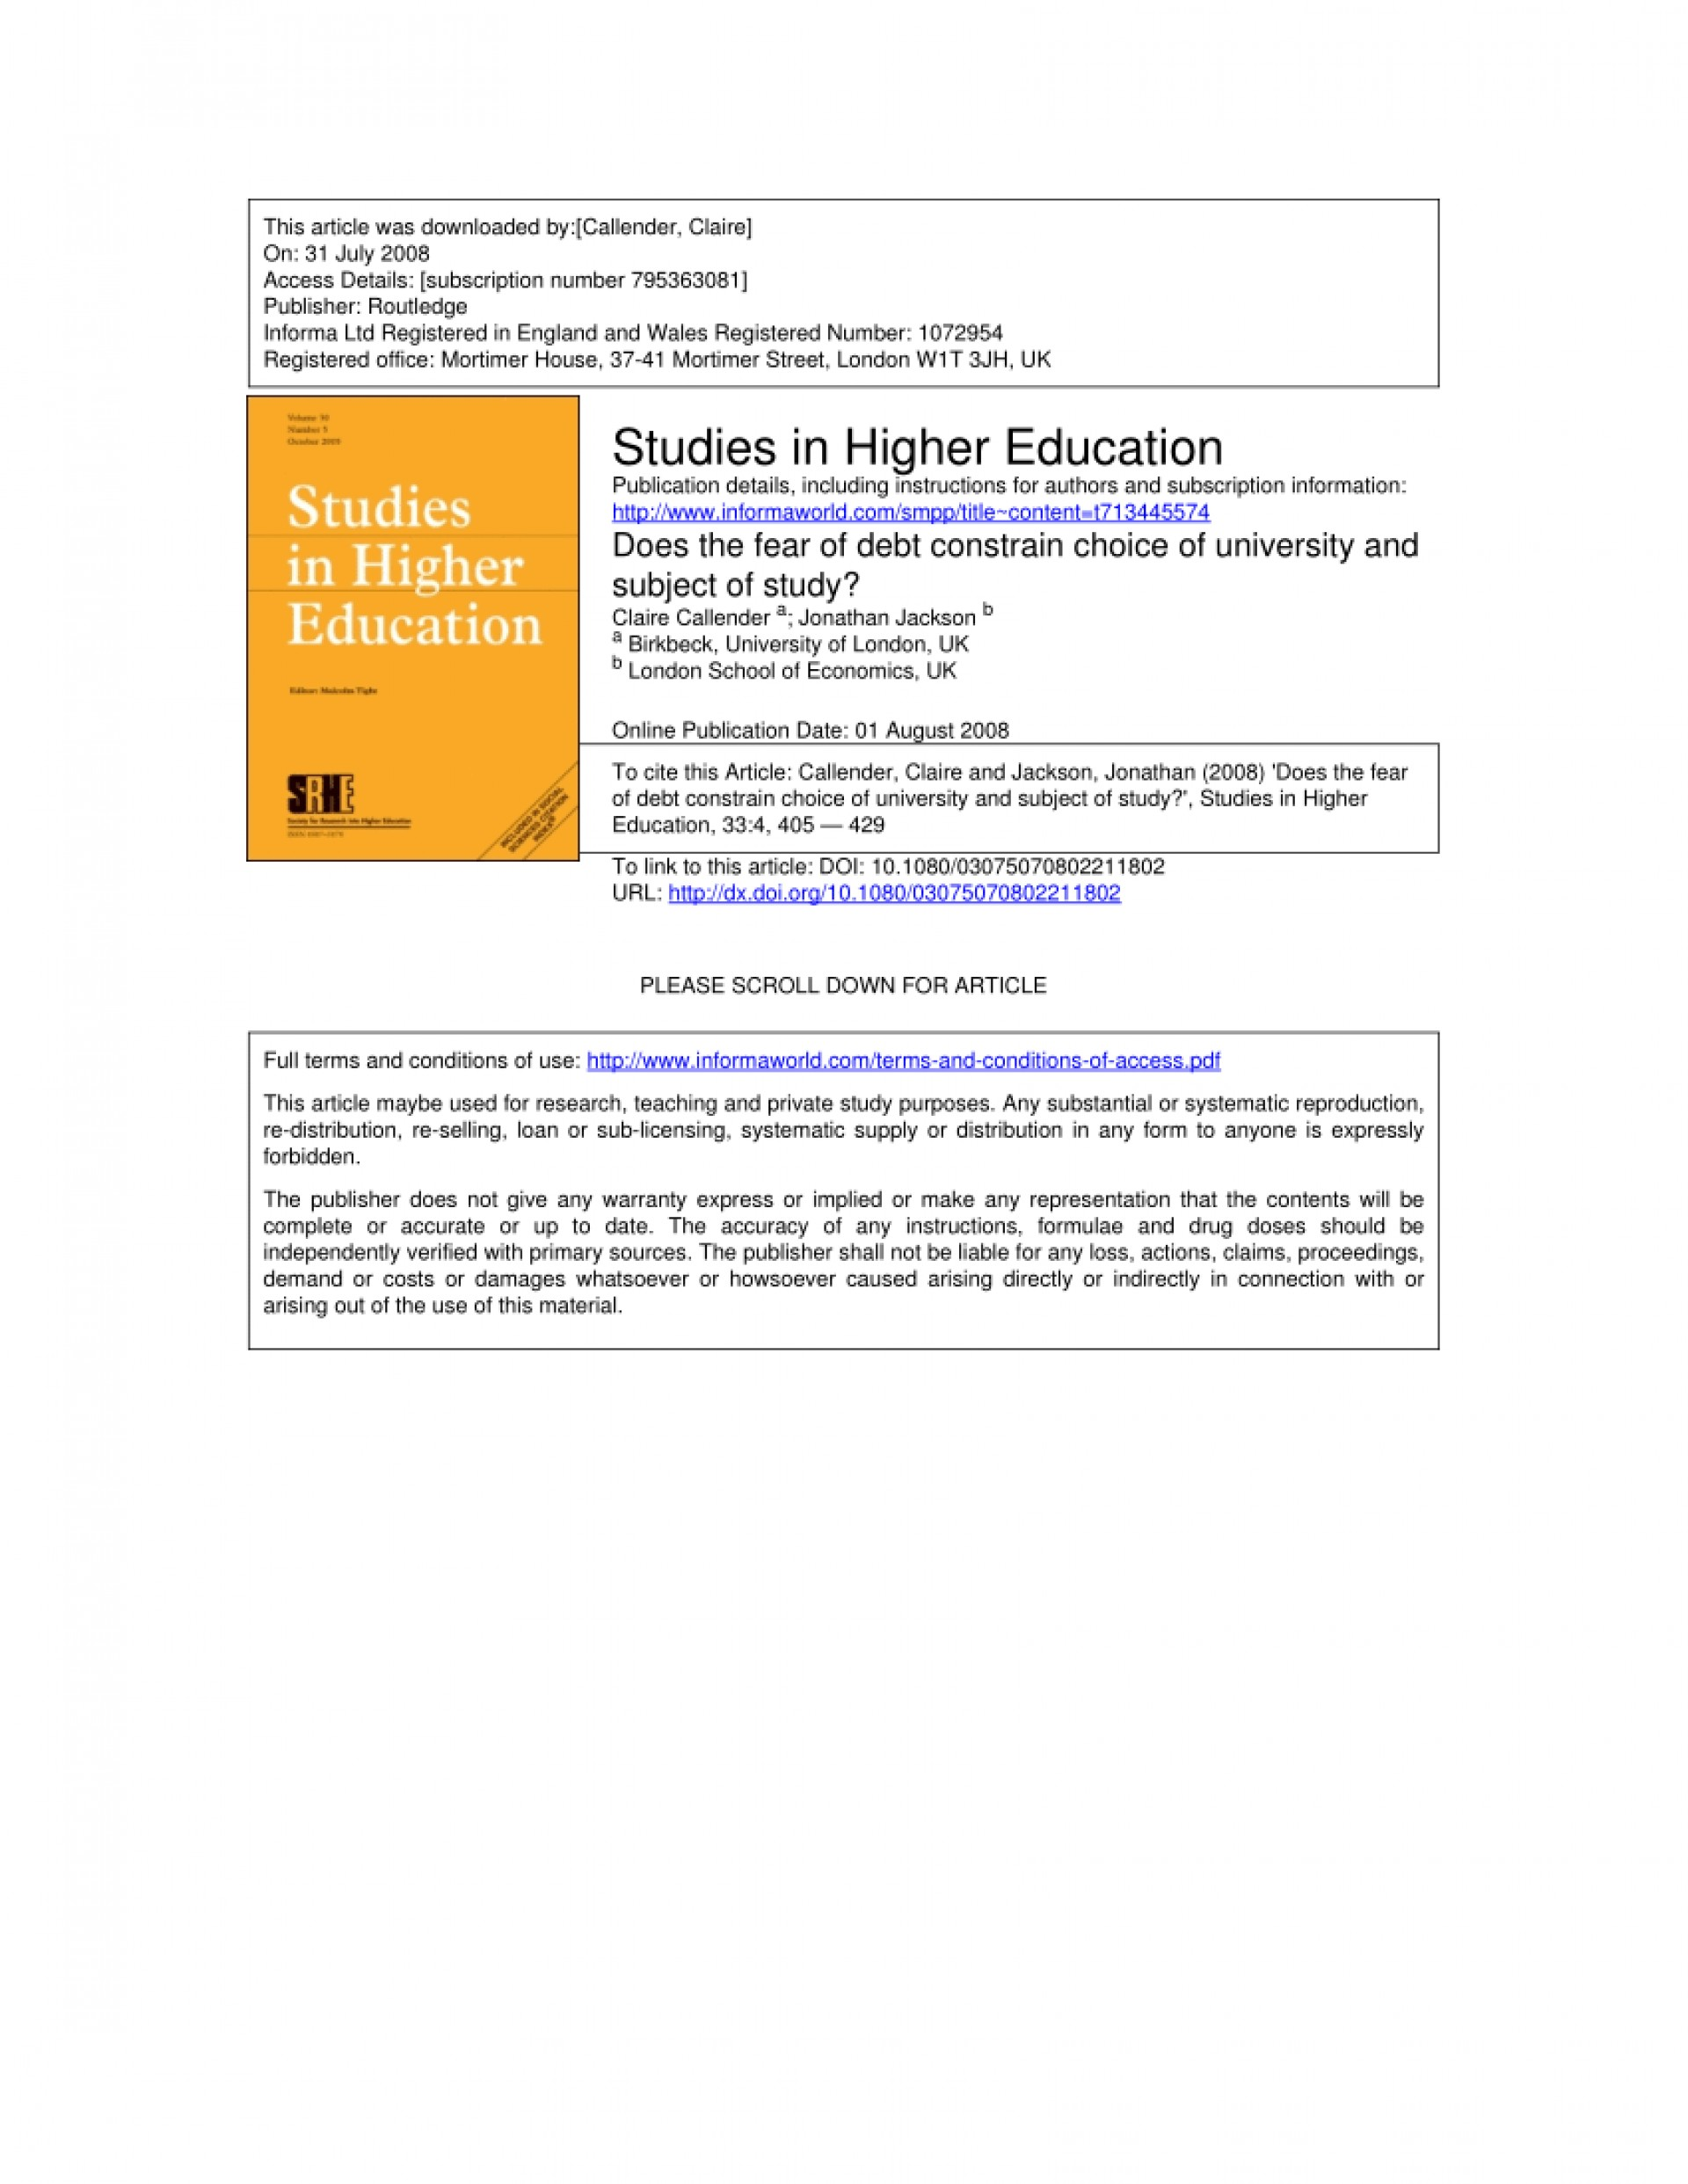 005 Research Paper Higher Education Pdf Amazing 1920